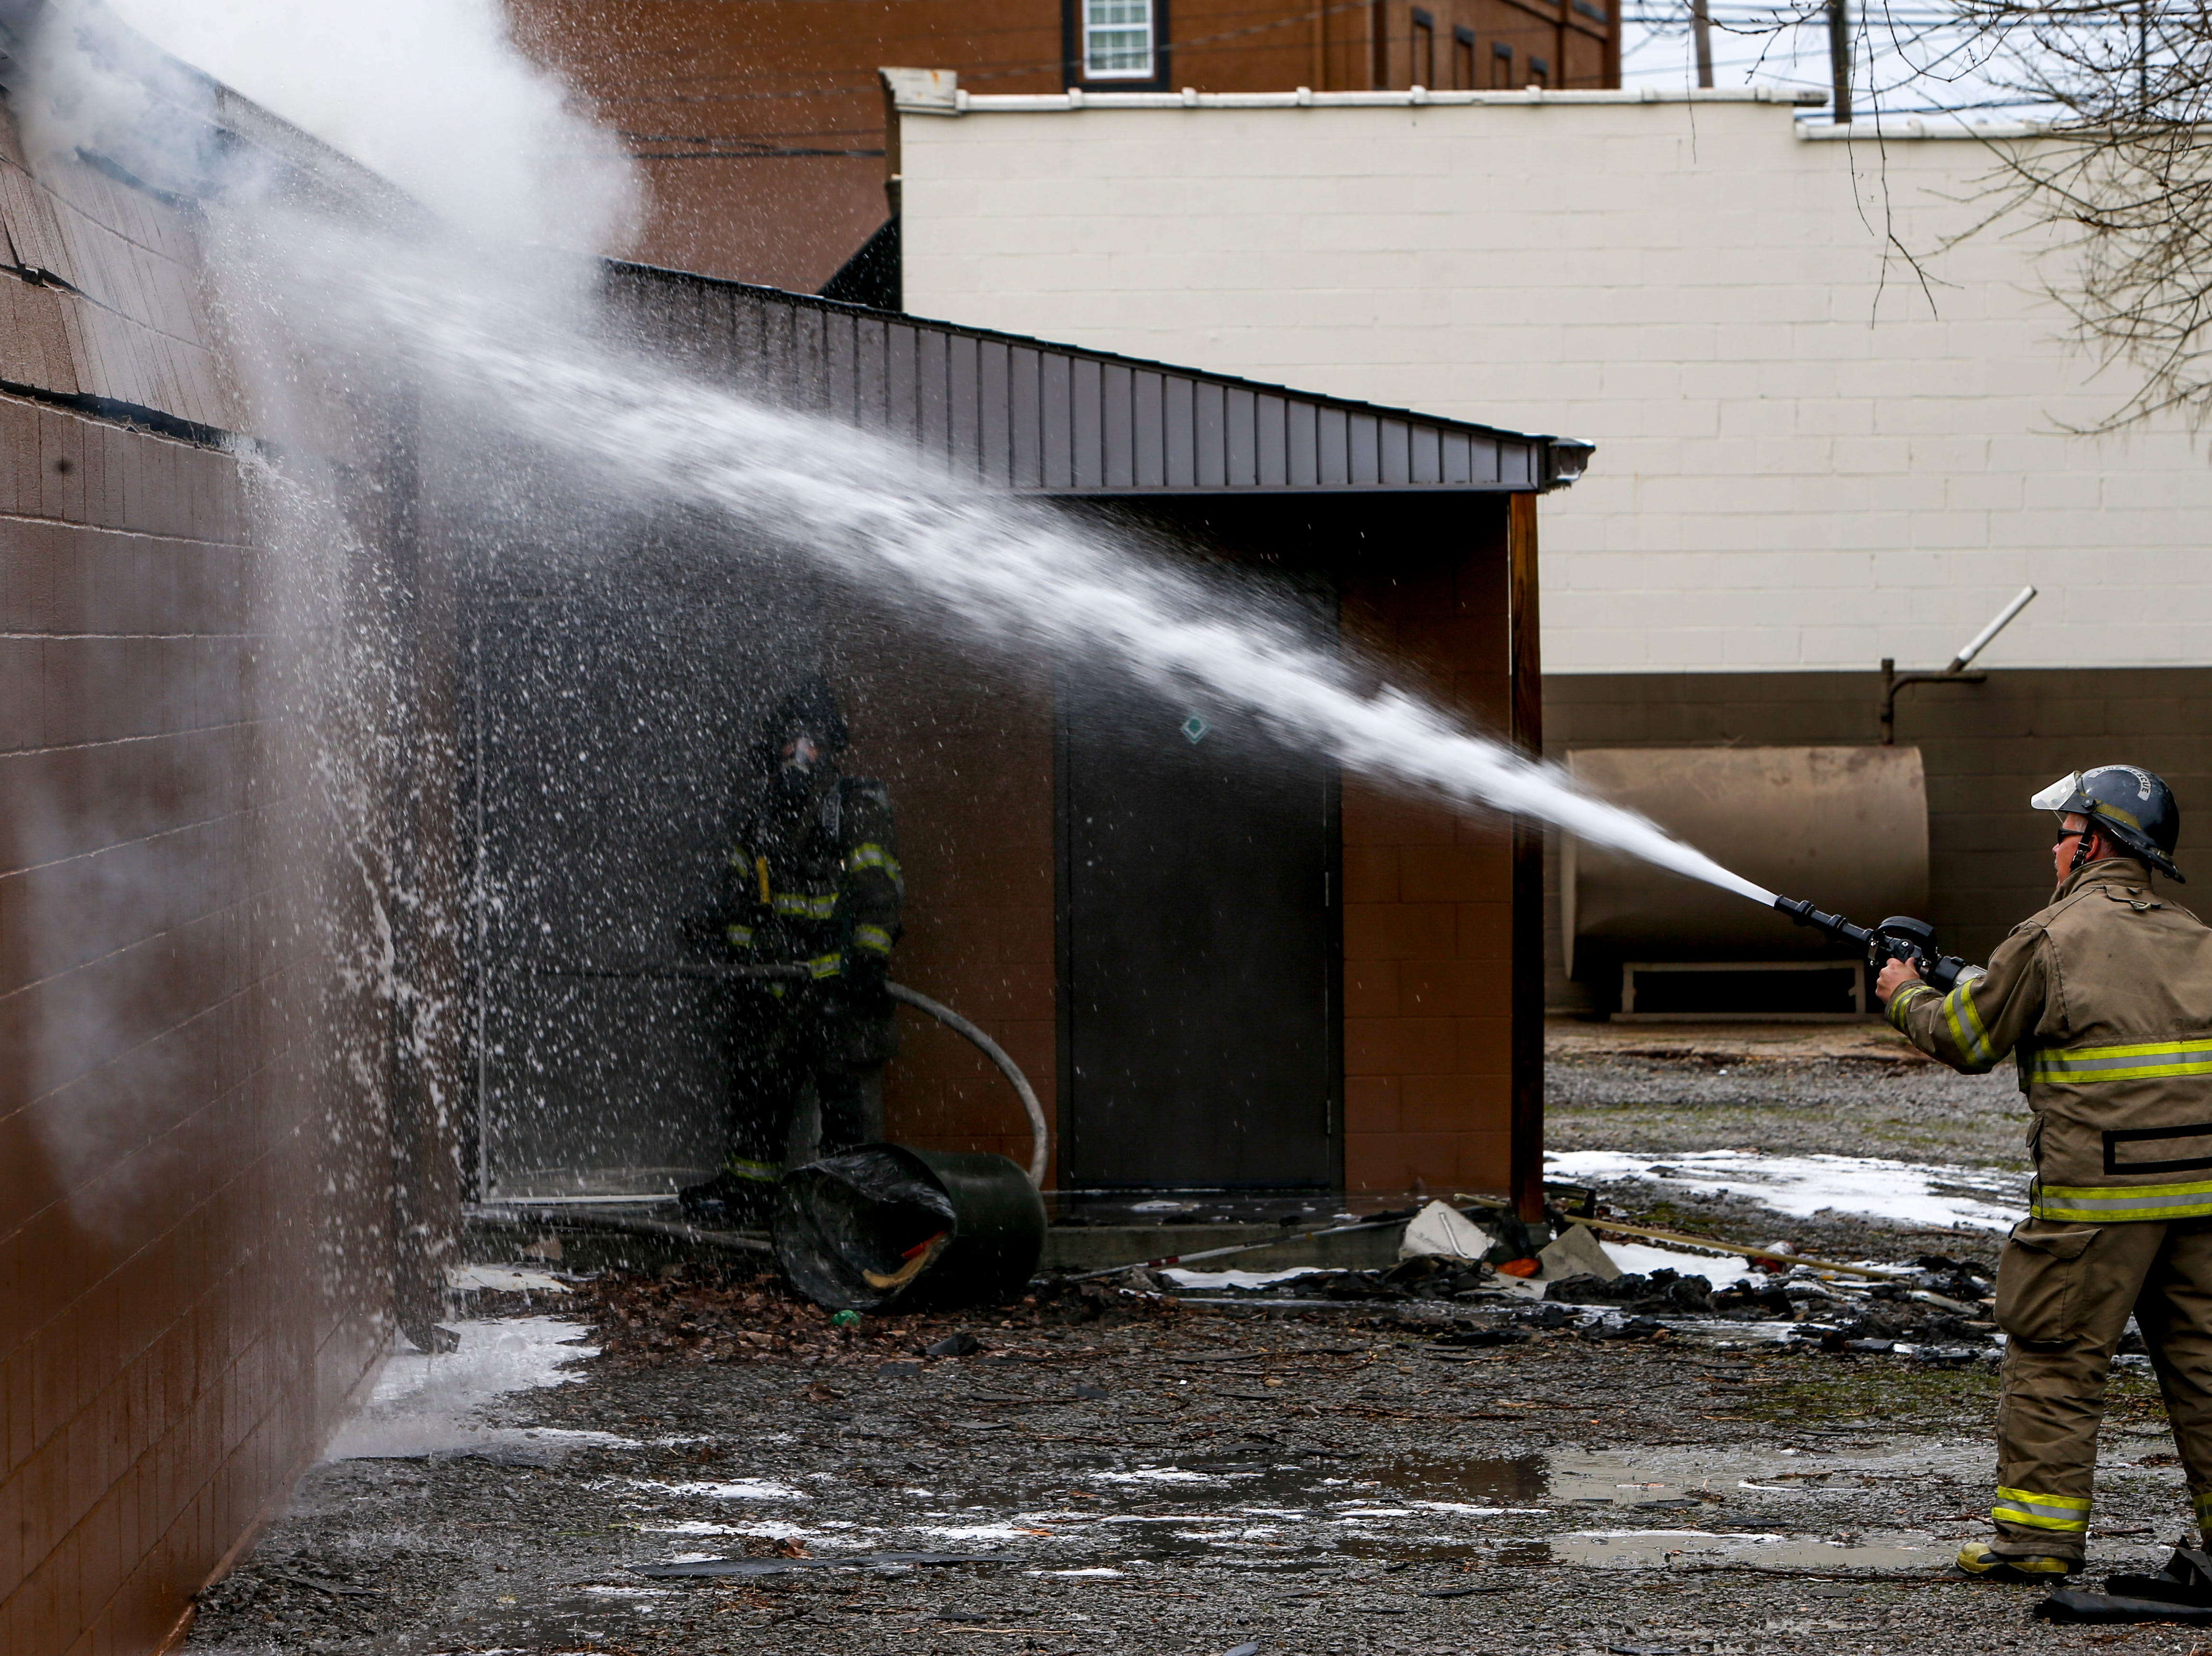 A Clarksville Fire Rescue firefighter sprays down a side wall while working to put out a fire in the shooting range at Clarksville Guns & Archery in Clarksville, Tenn., on Tuesday, March 12, 2019.